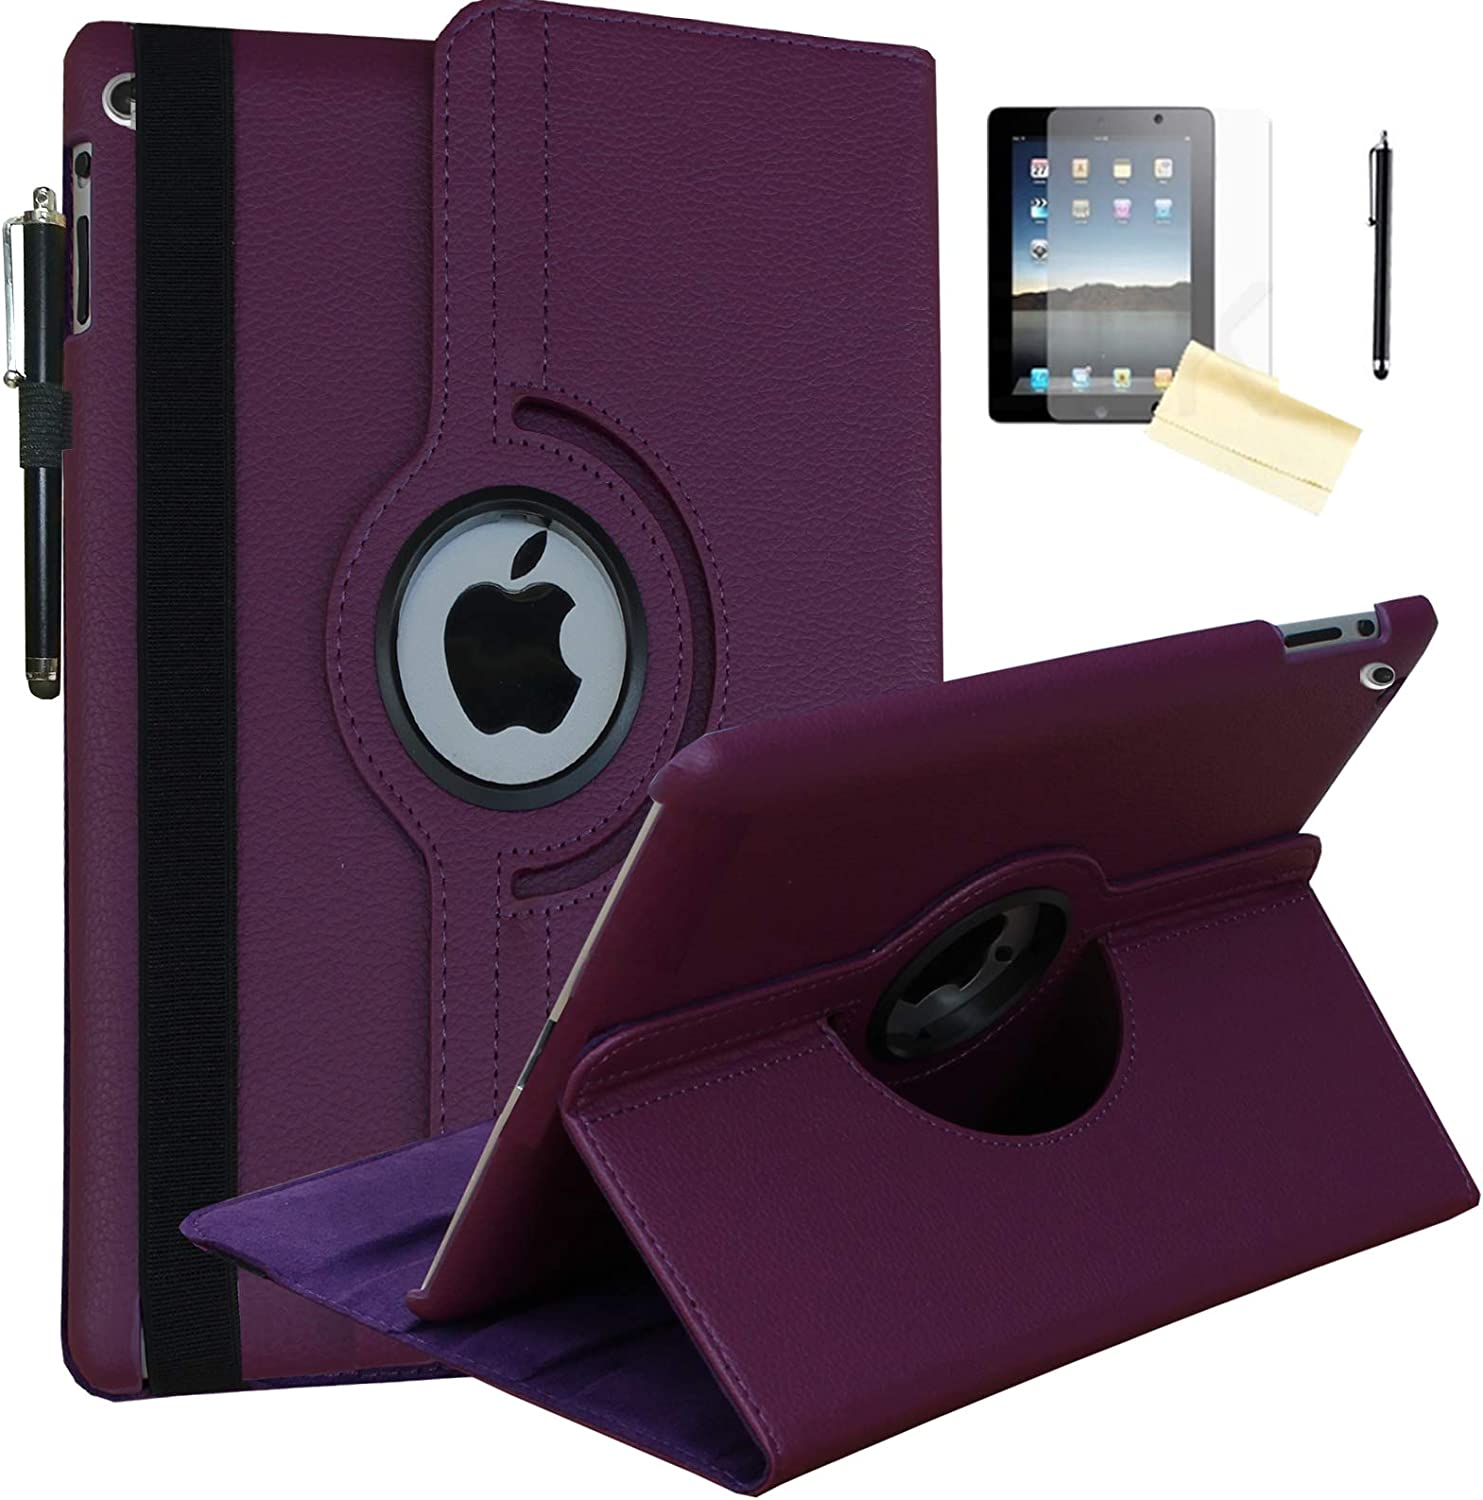 JYtrend Case for 2019 iPad 10.2 inch, for iPad 7th Generation, Rotating Stand Smart Magnetic Auto Wake Up/Sleep Cover for Model A2197 A2200 A2198 A2199 MW6X2LL/A MW712LL/A MW6Y2LL/A (Purple)